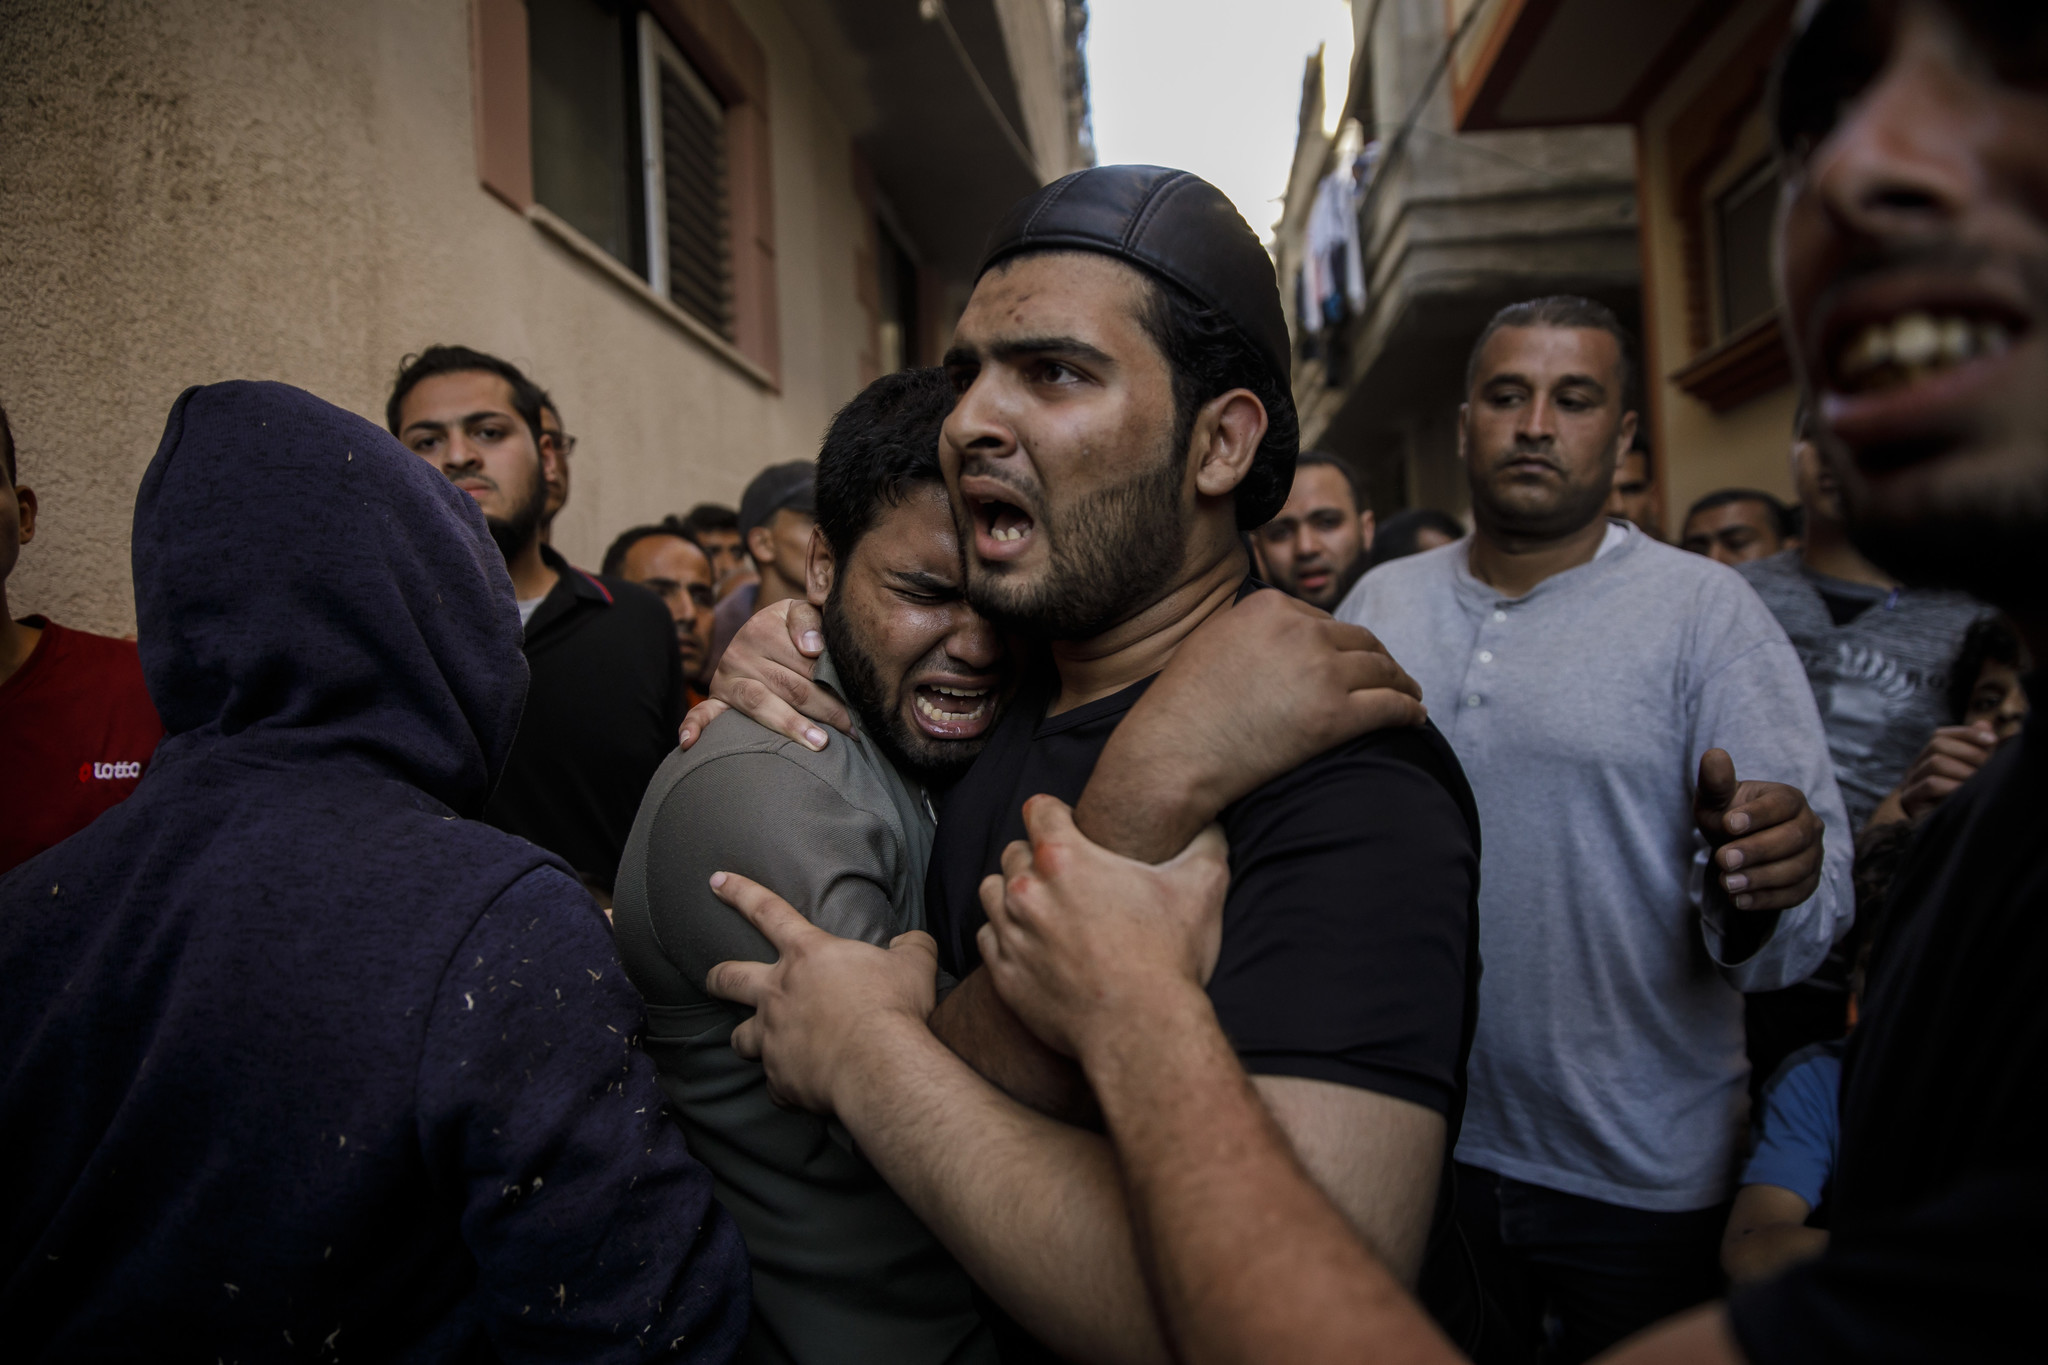 GAZA CITY, GAZA — MONDAY, MAY 14, 2018: Relatives of Taher Ahmed Madi, 25, mourn his death after hi